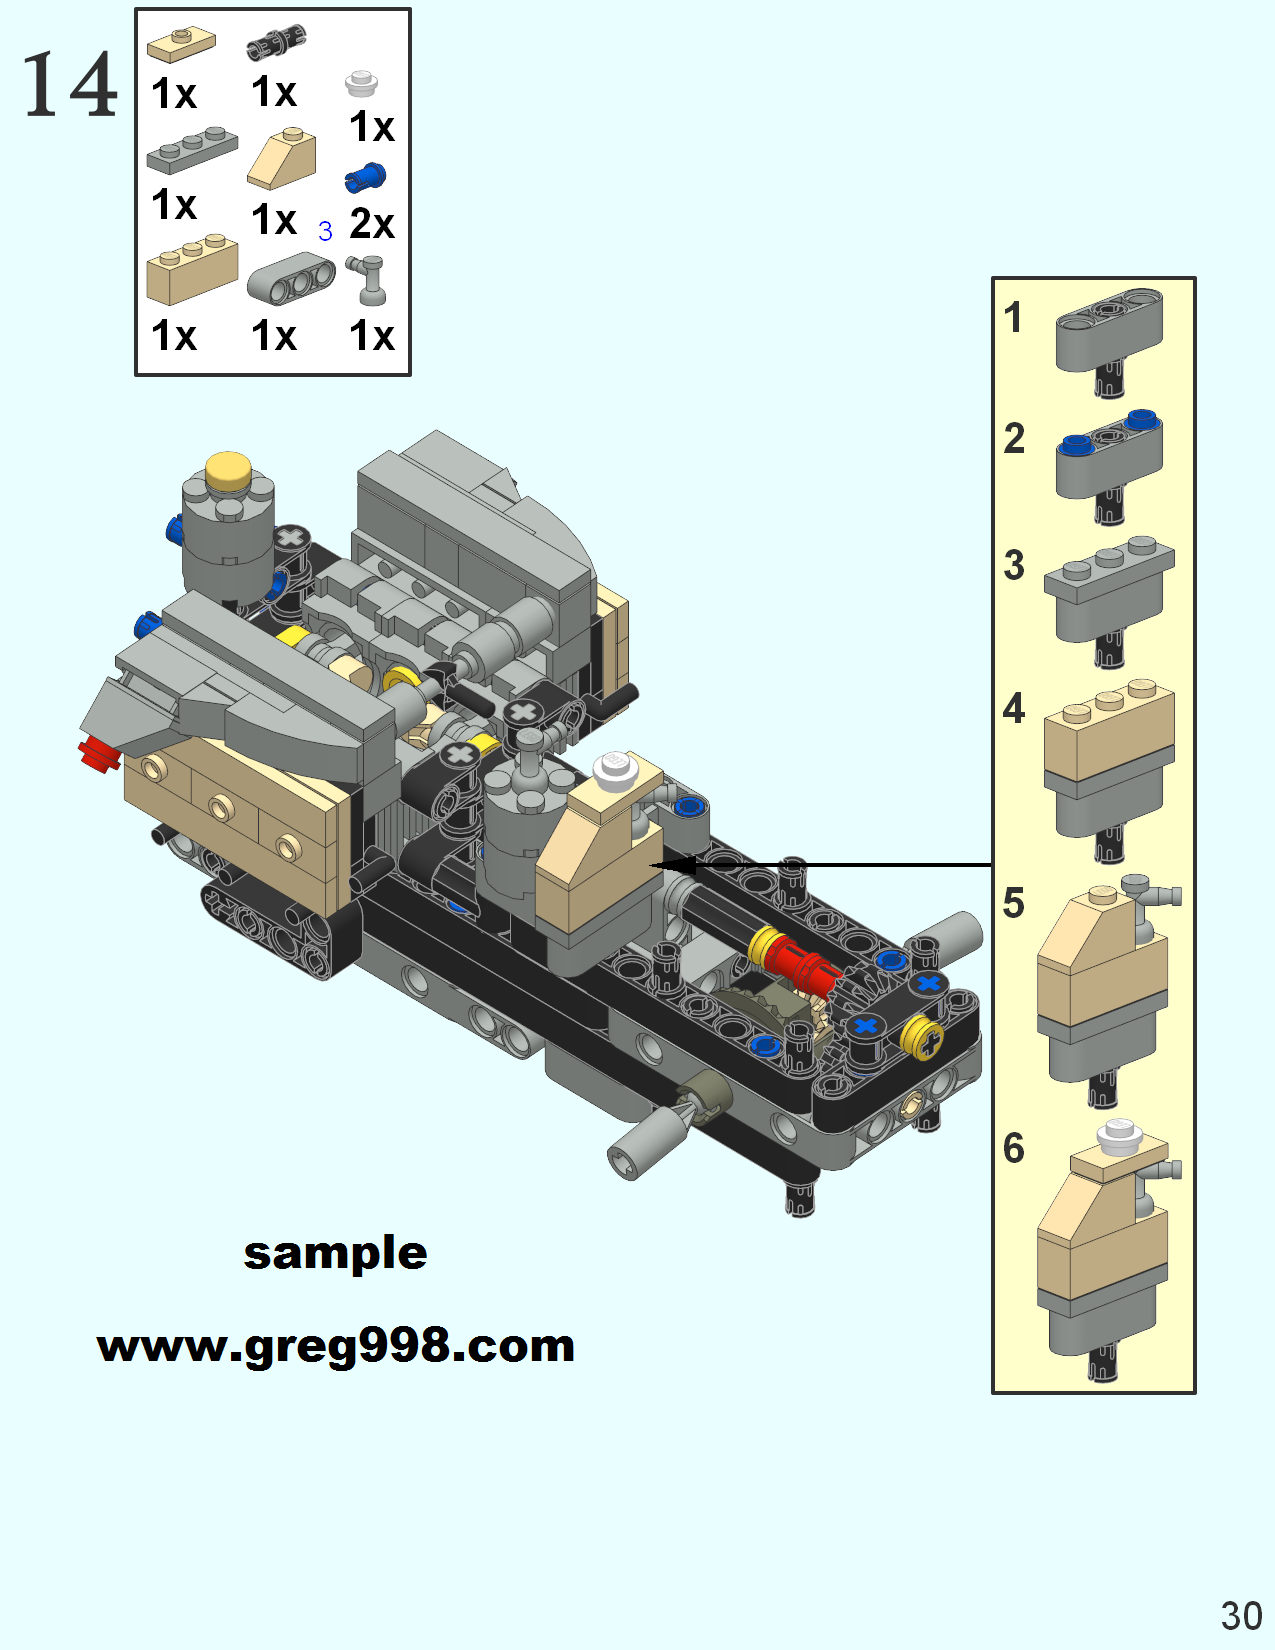 962cbygreg998sample3.png